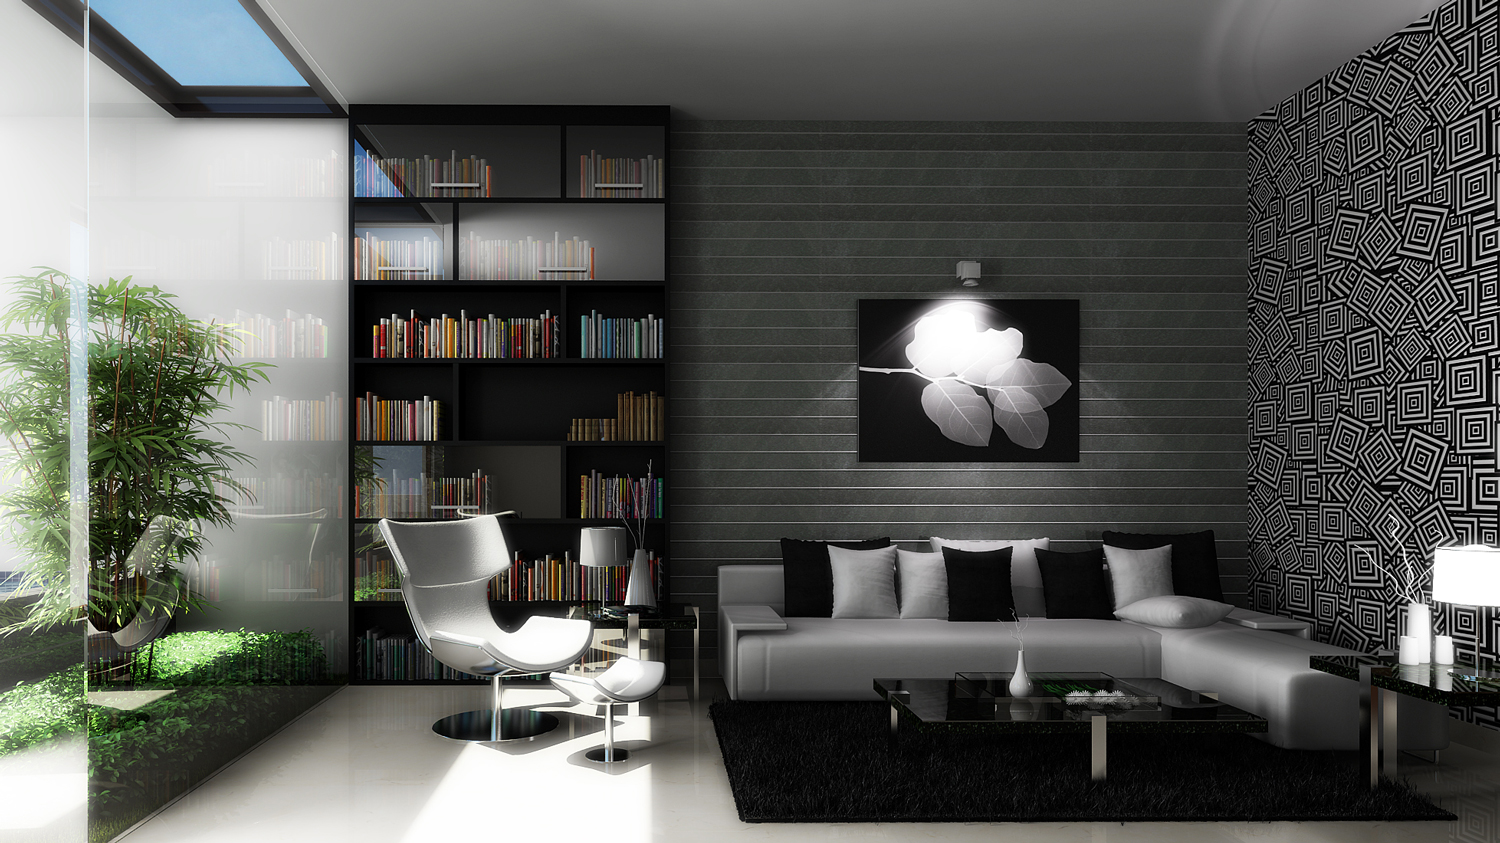 Fullsize Of Pictures Of Interior Decoration Of Living Room